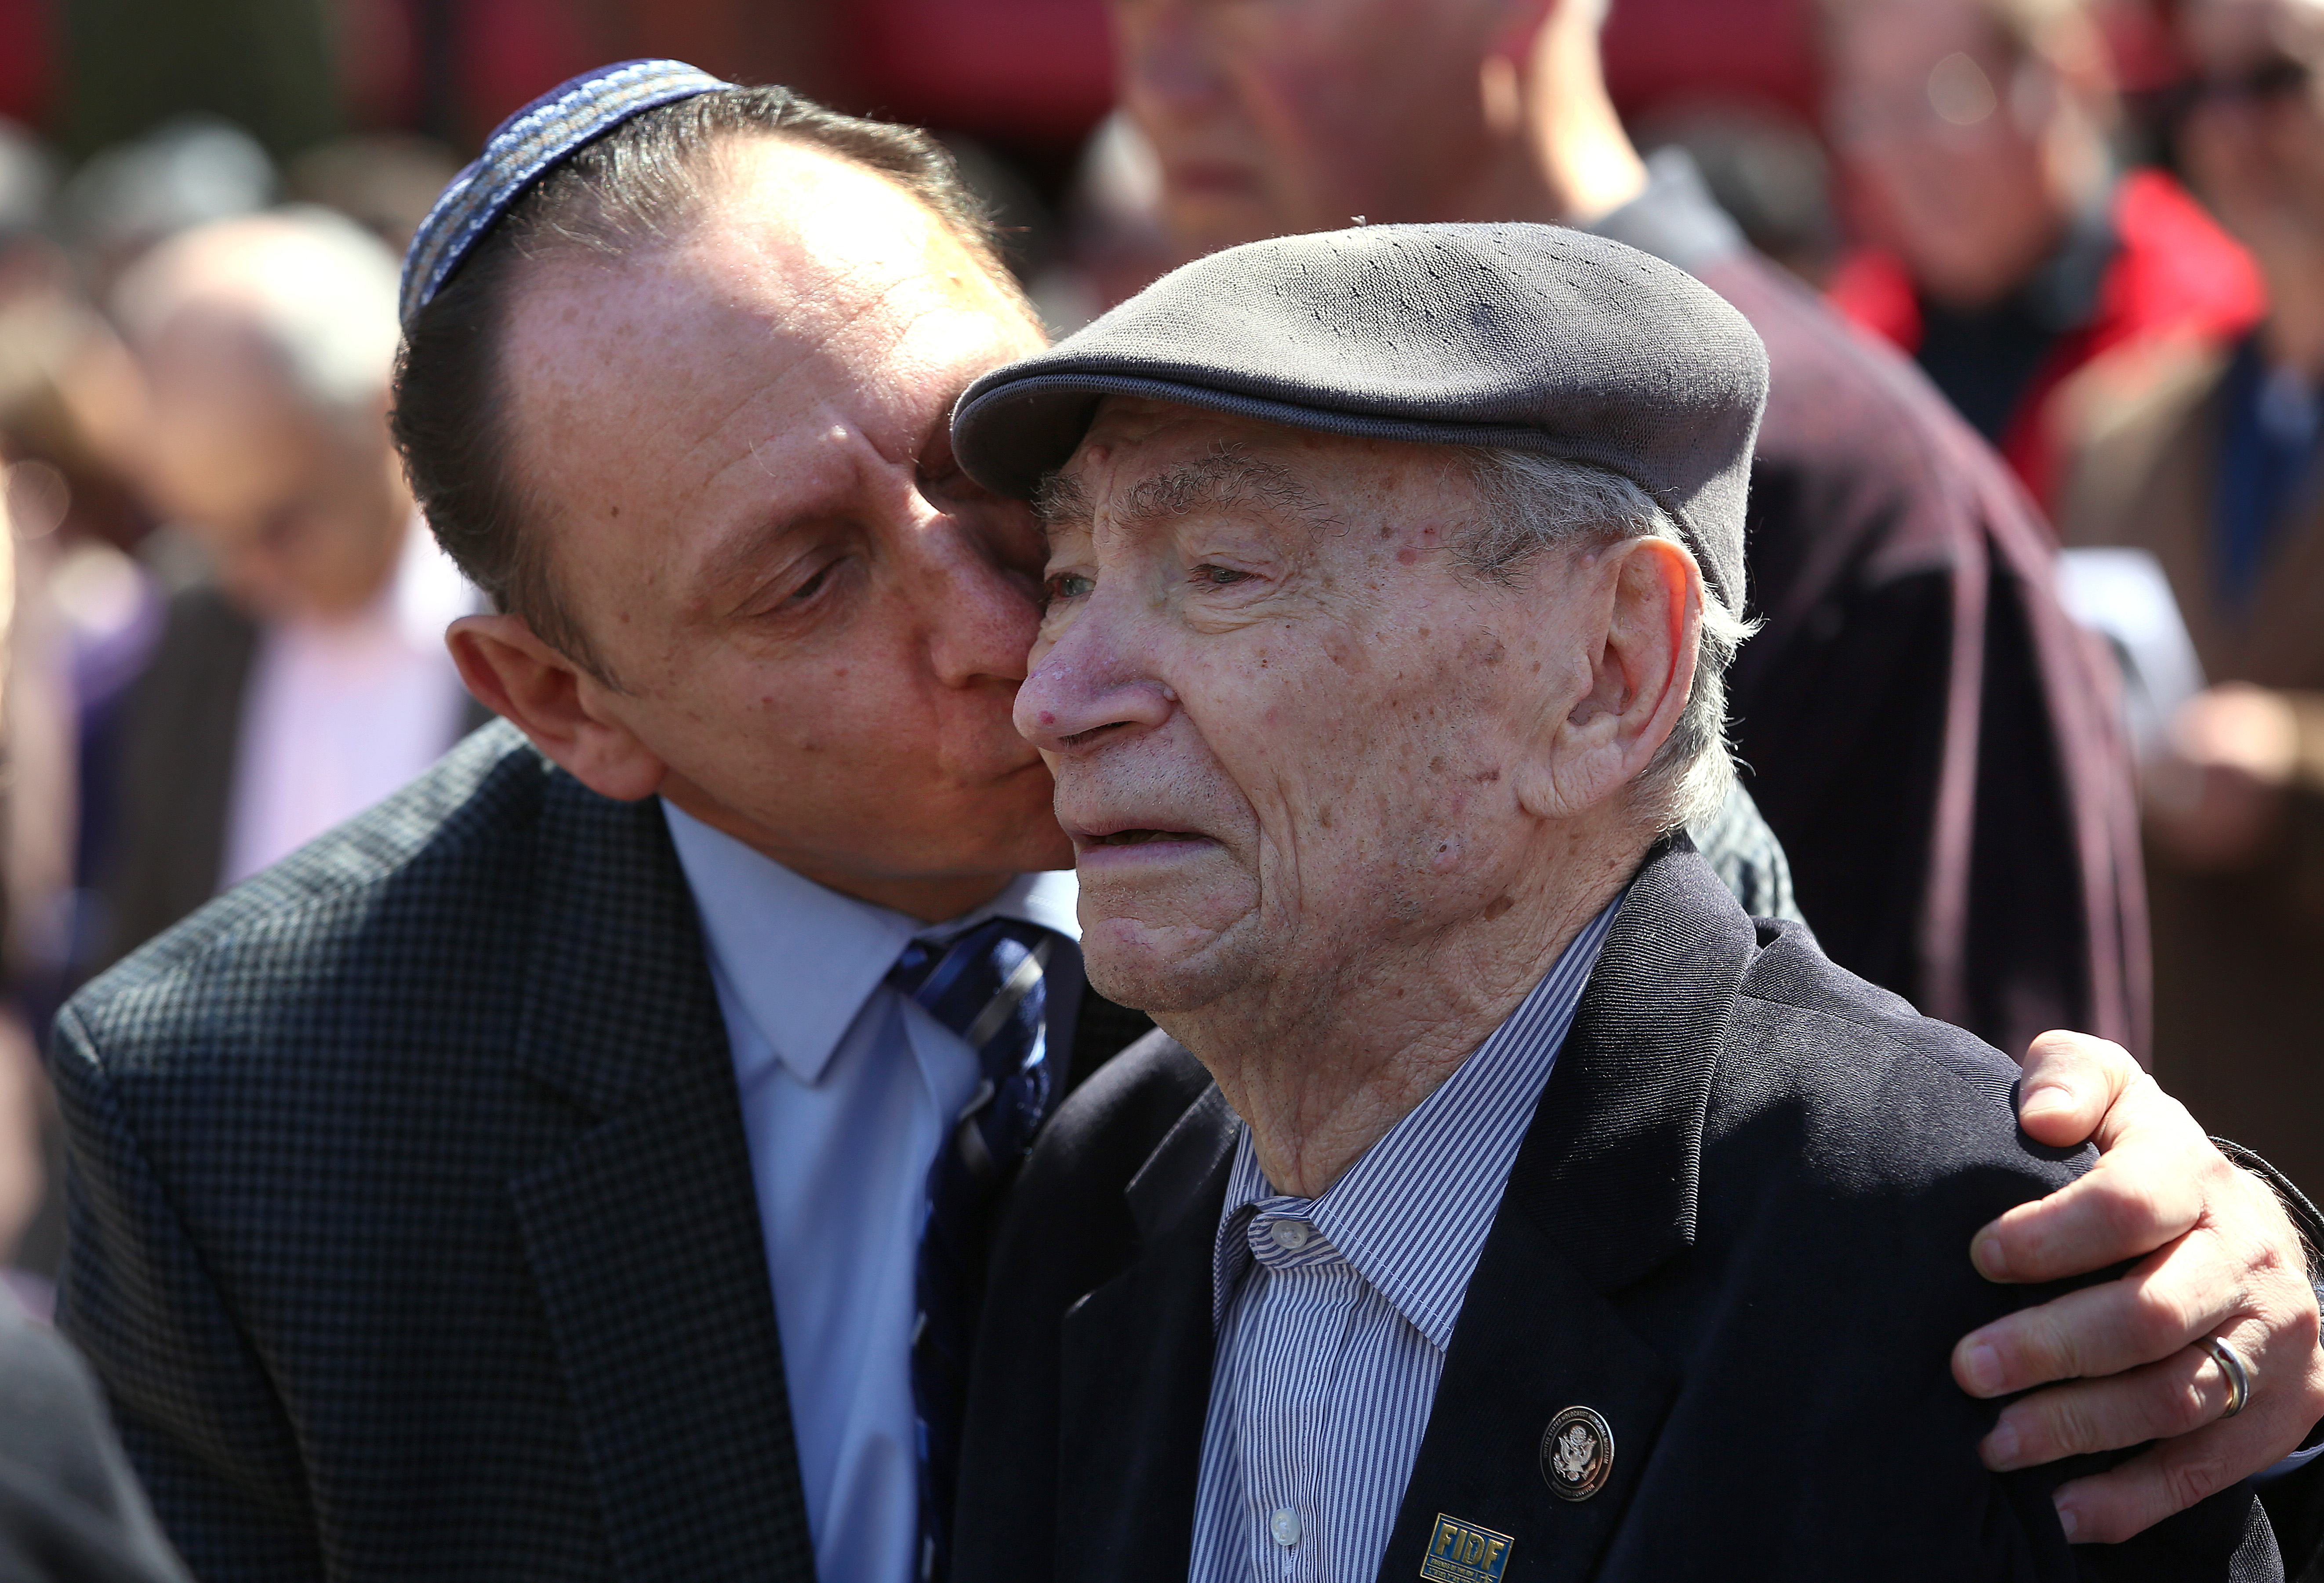 Mark Rogozinski kisses his 91-year-old father, Abram Rogozinski, who is a survivor of seven camps, at the New England Holocaust Memorial on April 12, 2015.